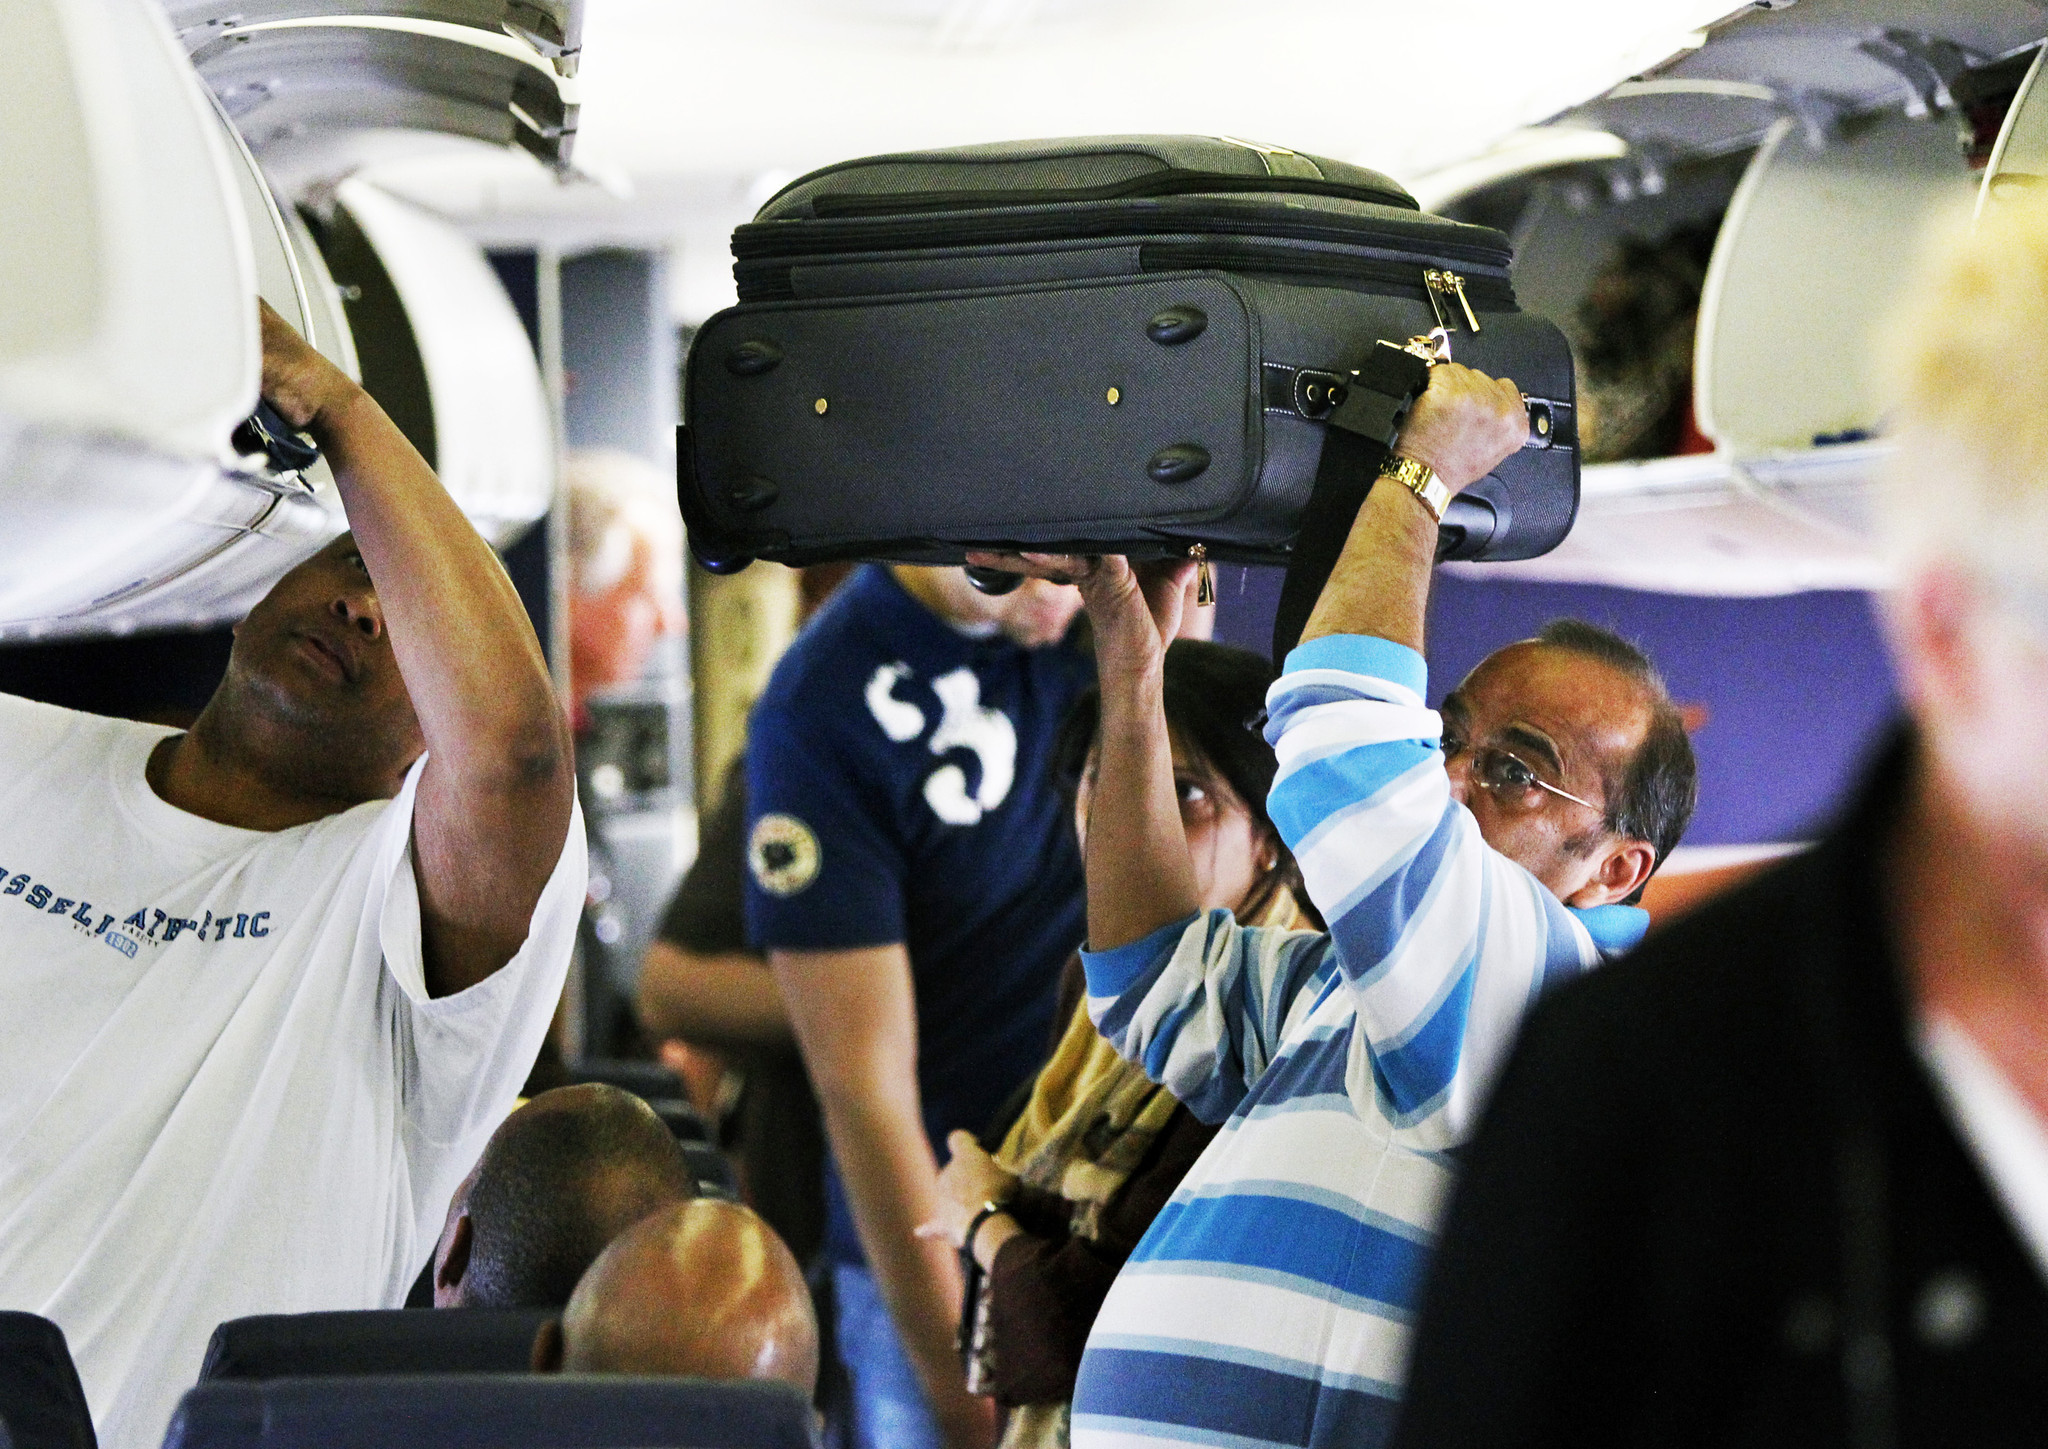 Should airlines charge for weight of carry-on bags  - Chicago Tribune 6169acfc85684